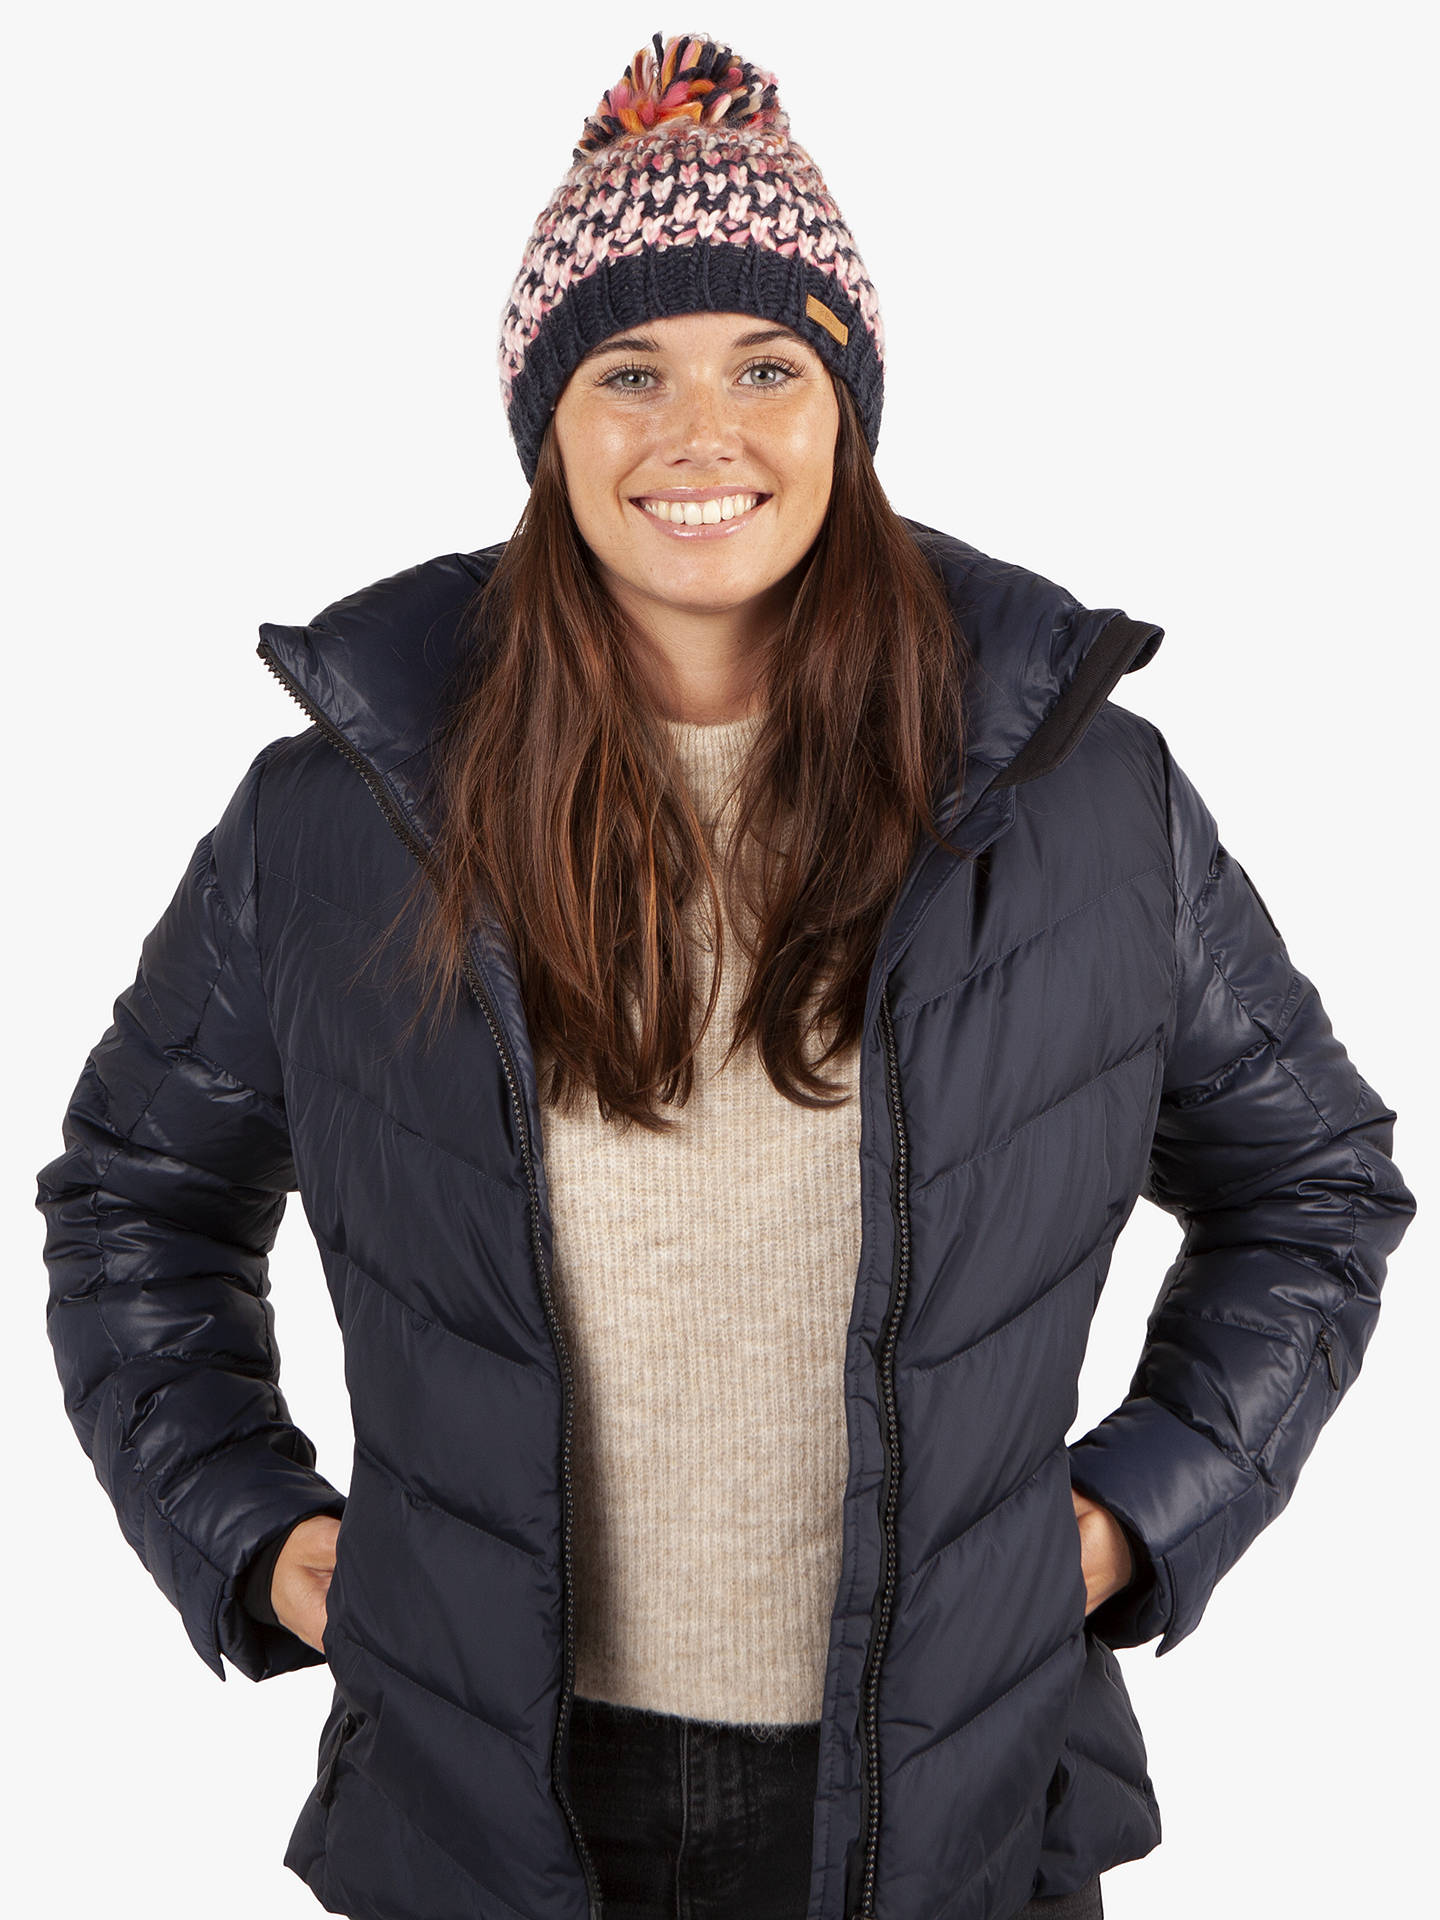 BuyBarts Nicole Beanie, One Size, Navy Online at johnlewis.com